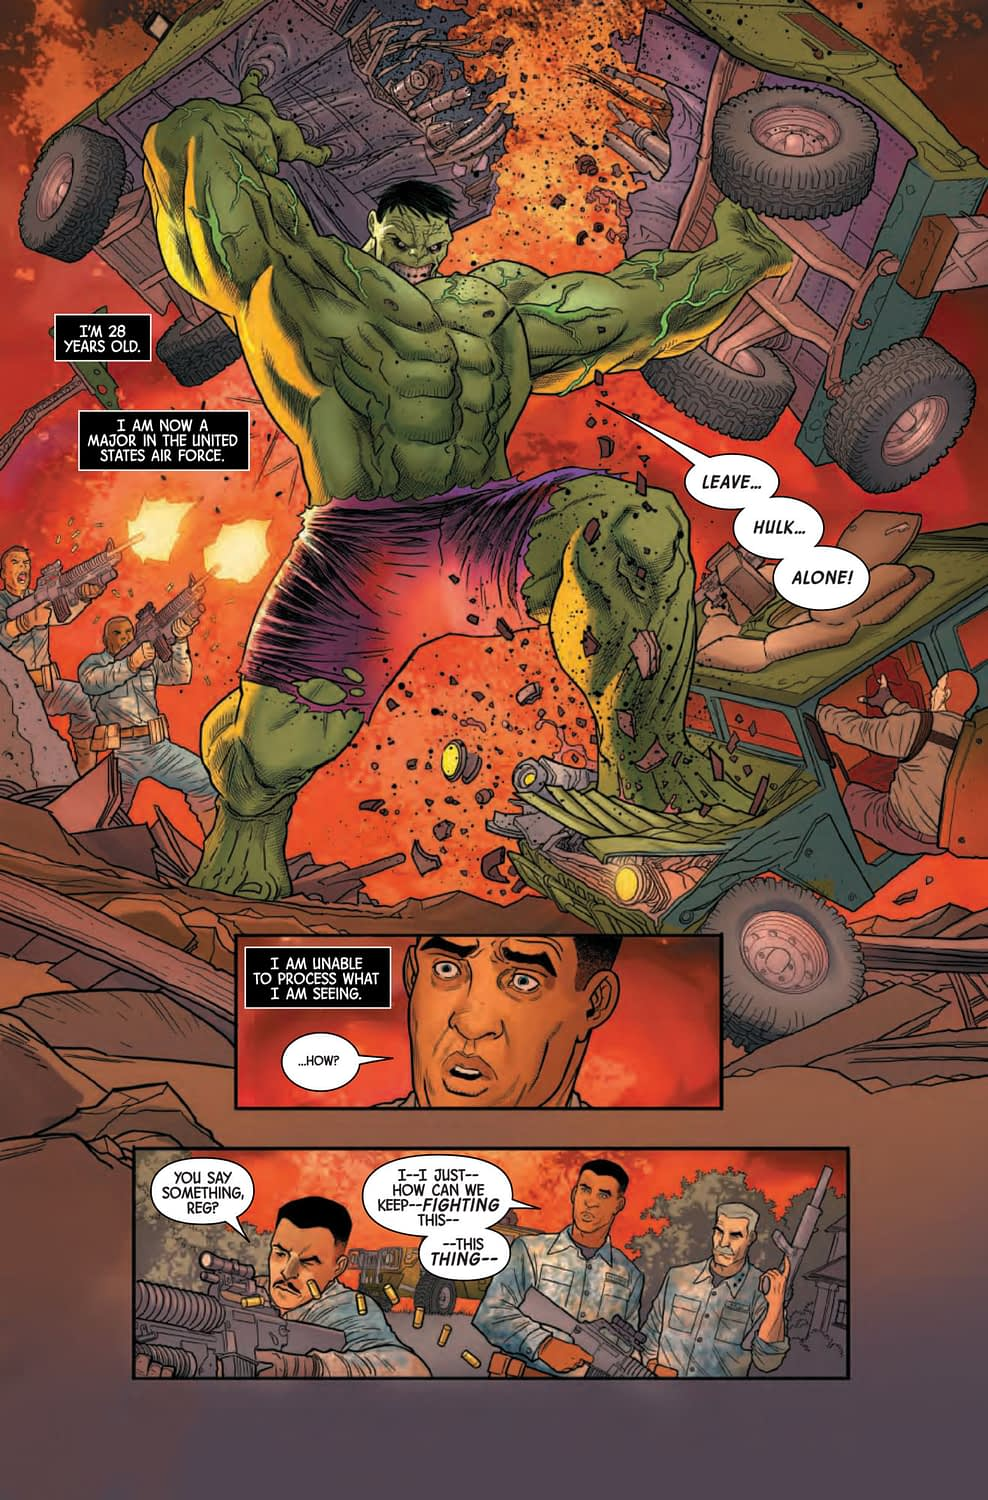 Immortal Hulk #21 - Back to Hulk's 2005 Origins [Preview]